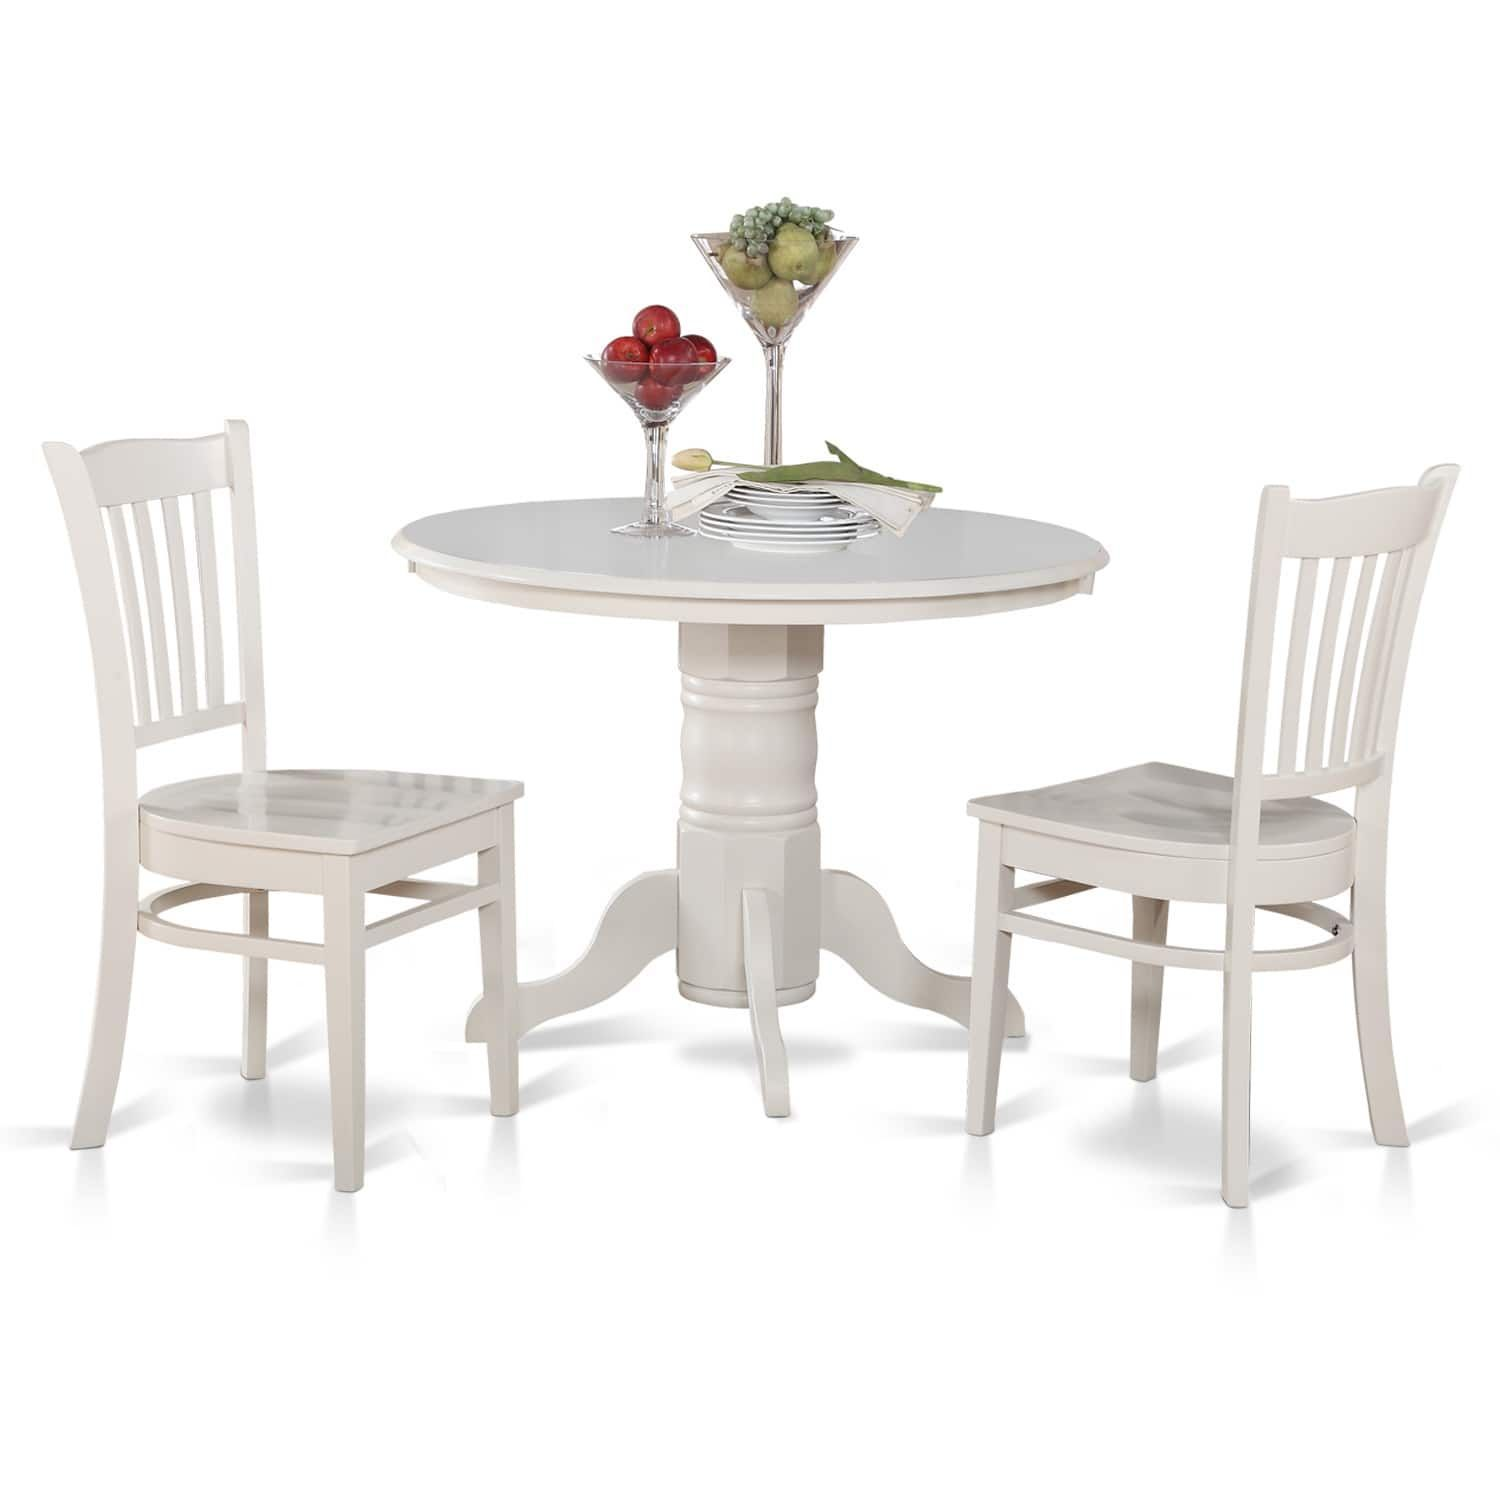 3-piece Small Round Table and 2 Kitchen Chairs (White - White Finish ...